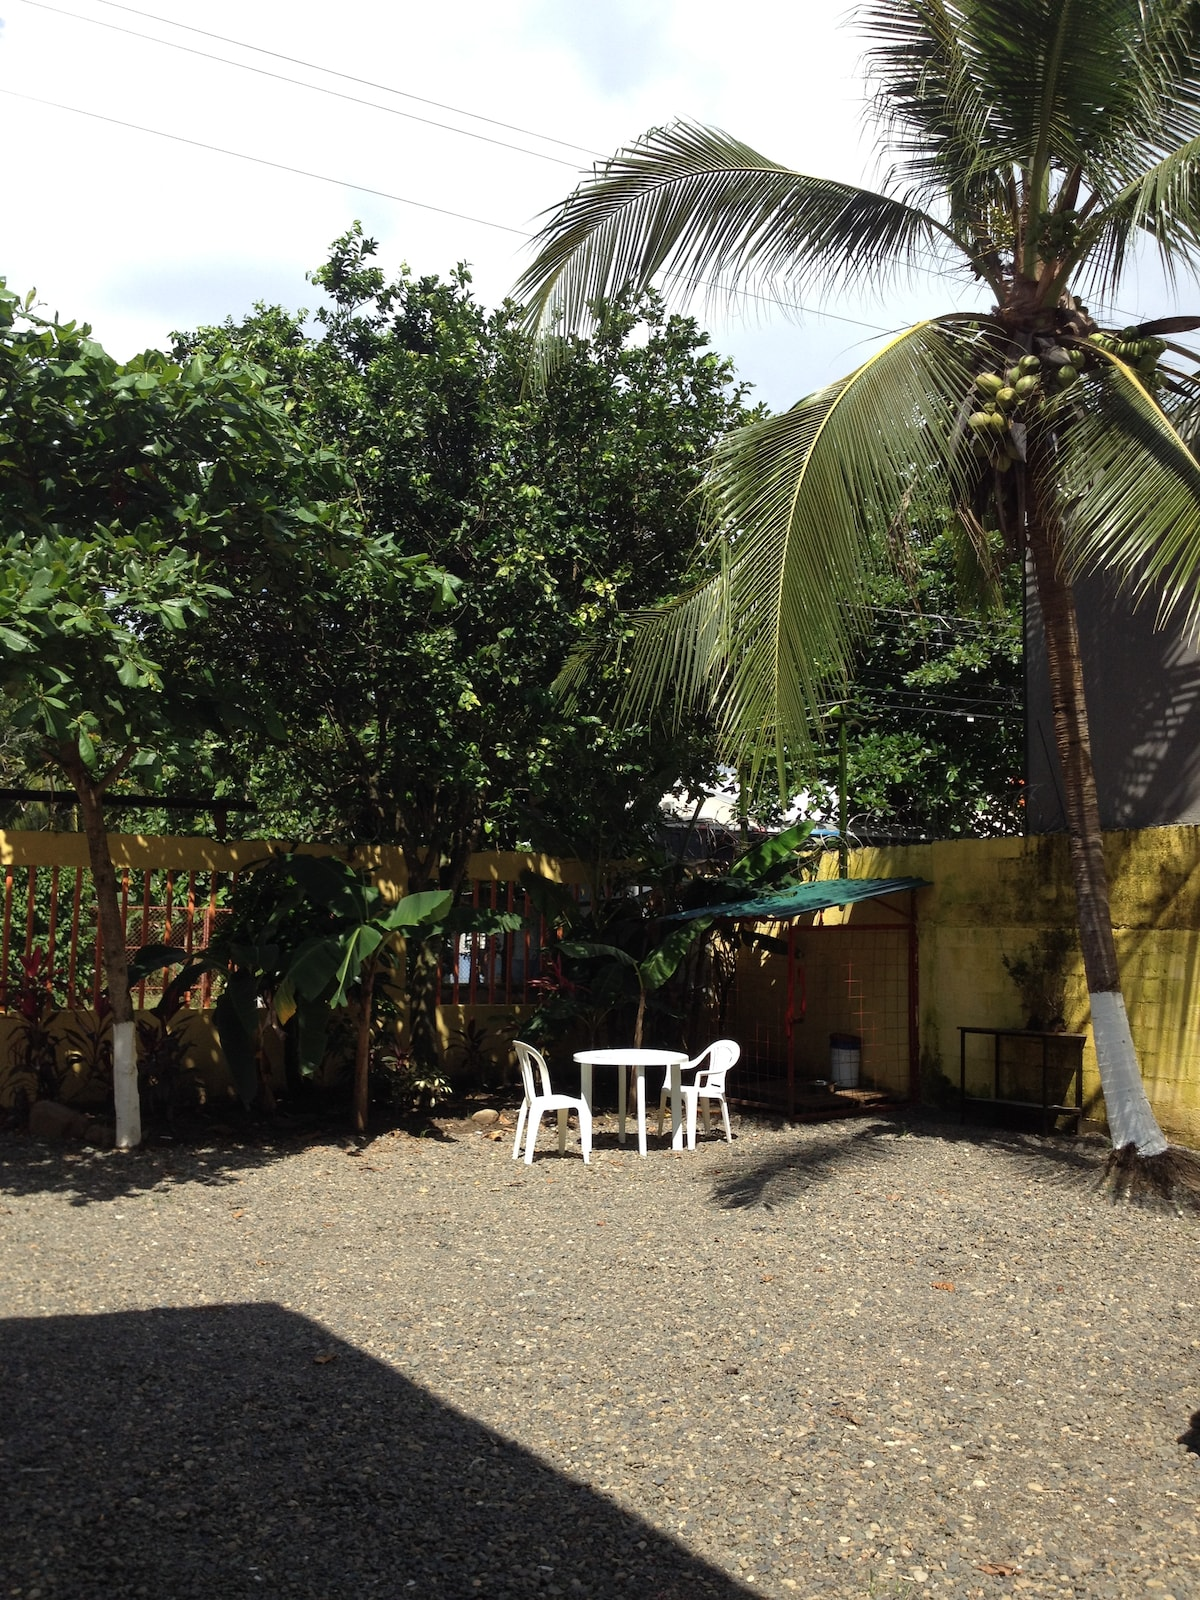 Parking area with coconuts and green area!